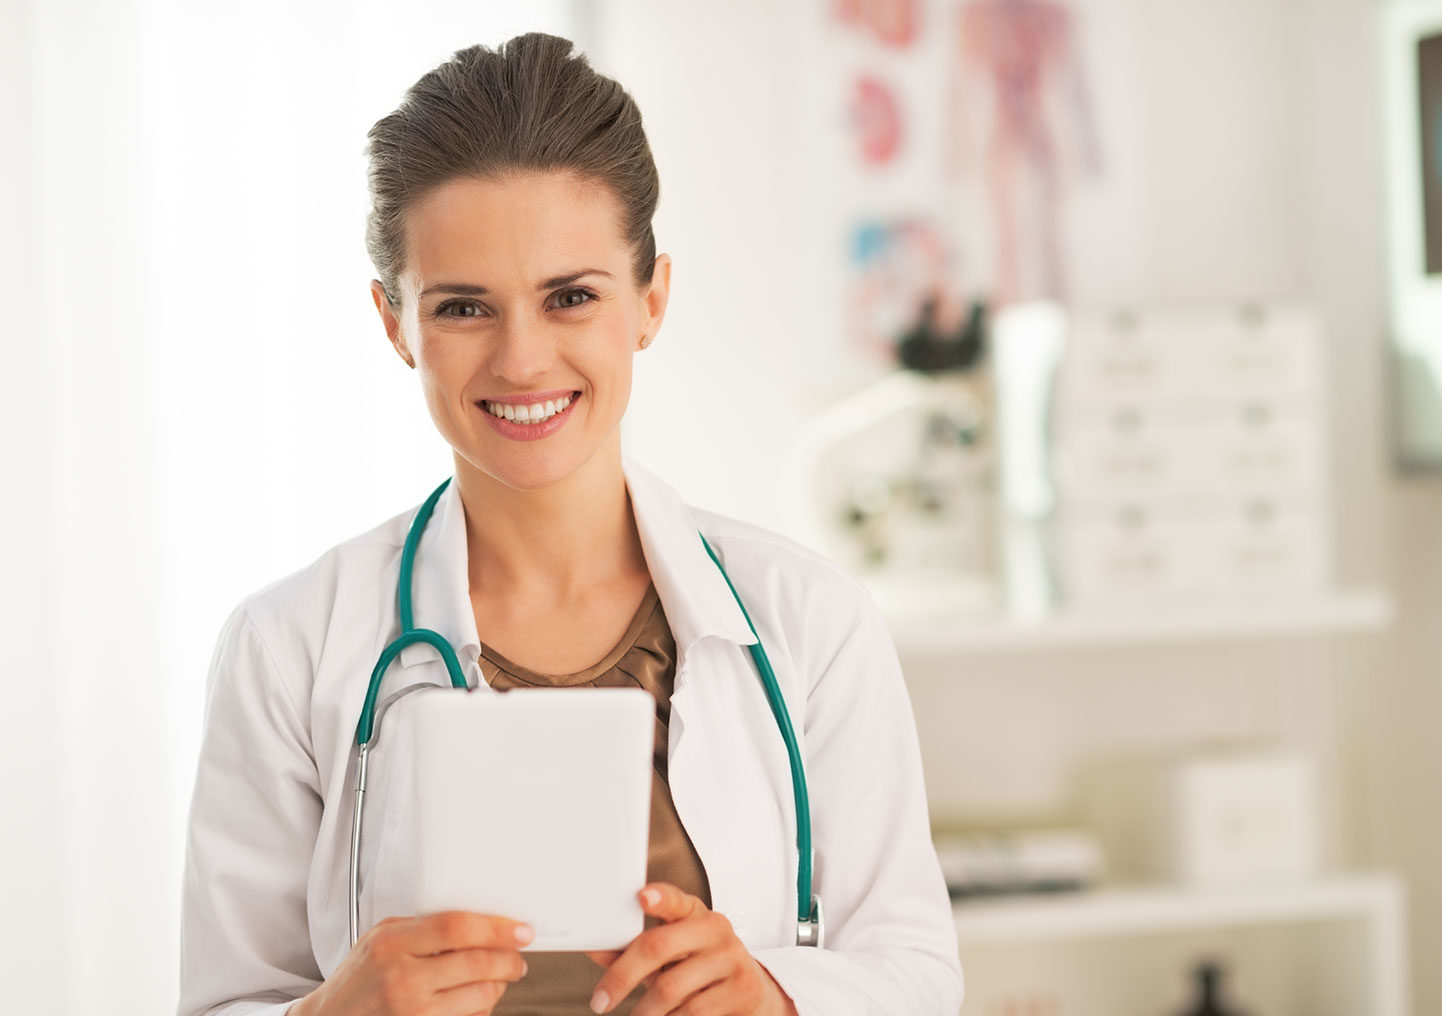 Young nurse standing smiling in clinic